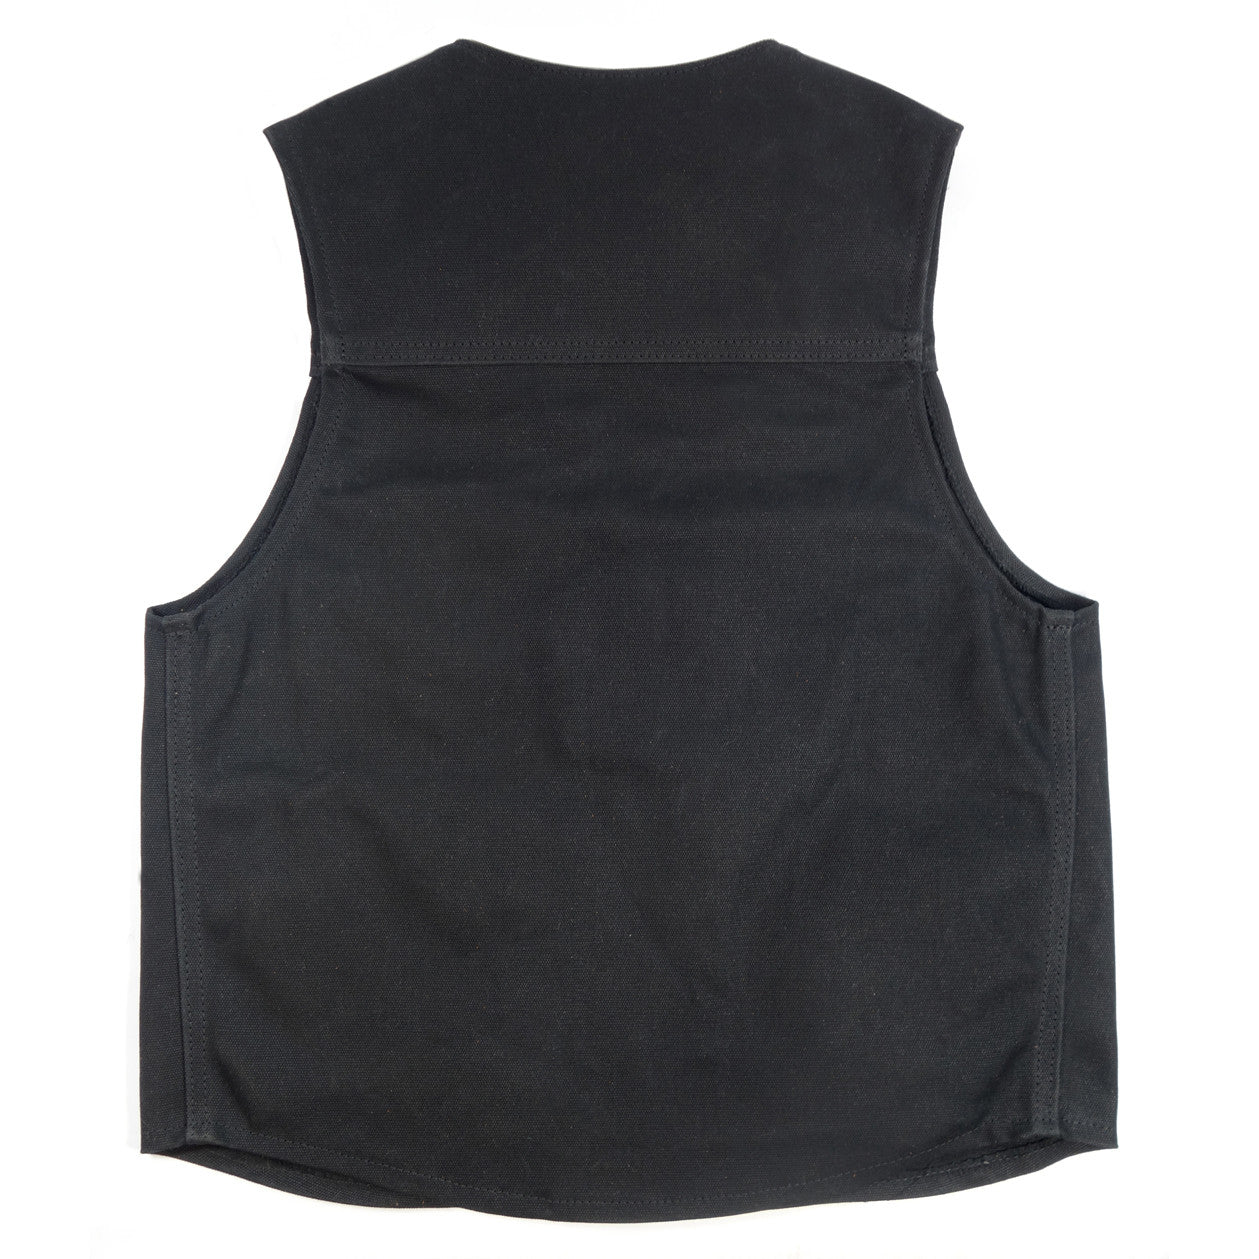 Selvage Denim Vest - Black